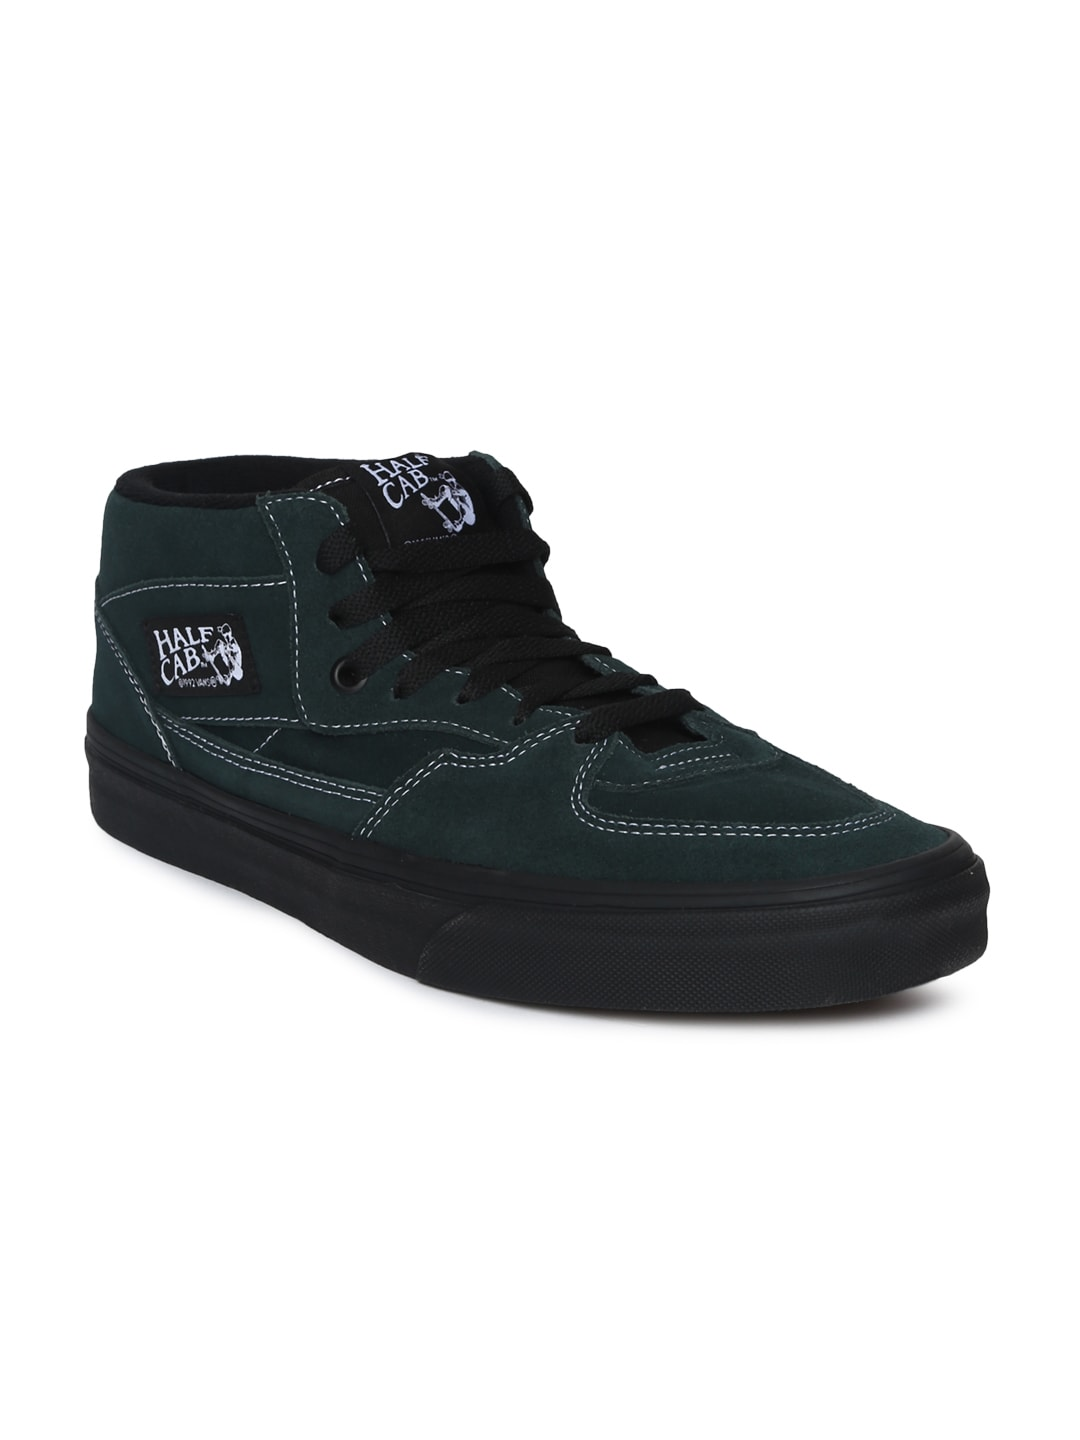 14209fa015 Buy Vans Unisex Black Solid Synthetic Half Cab Mid Top Sneakers ...